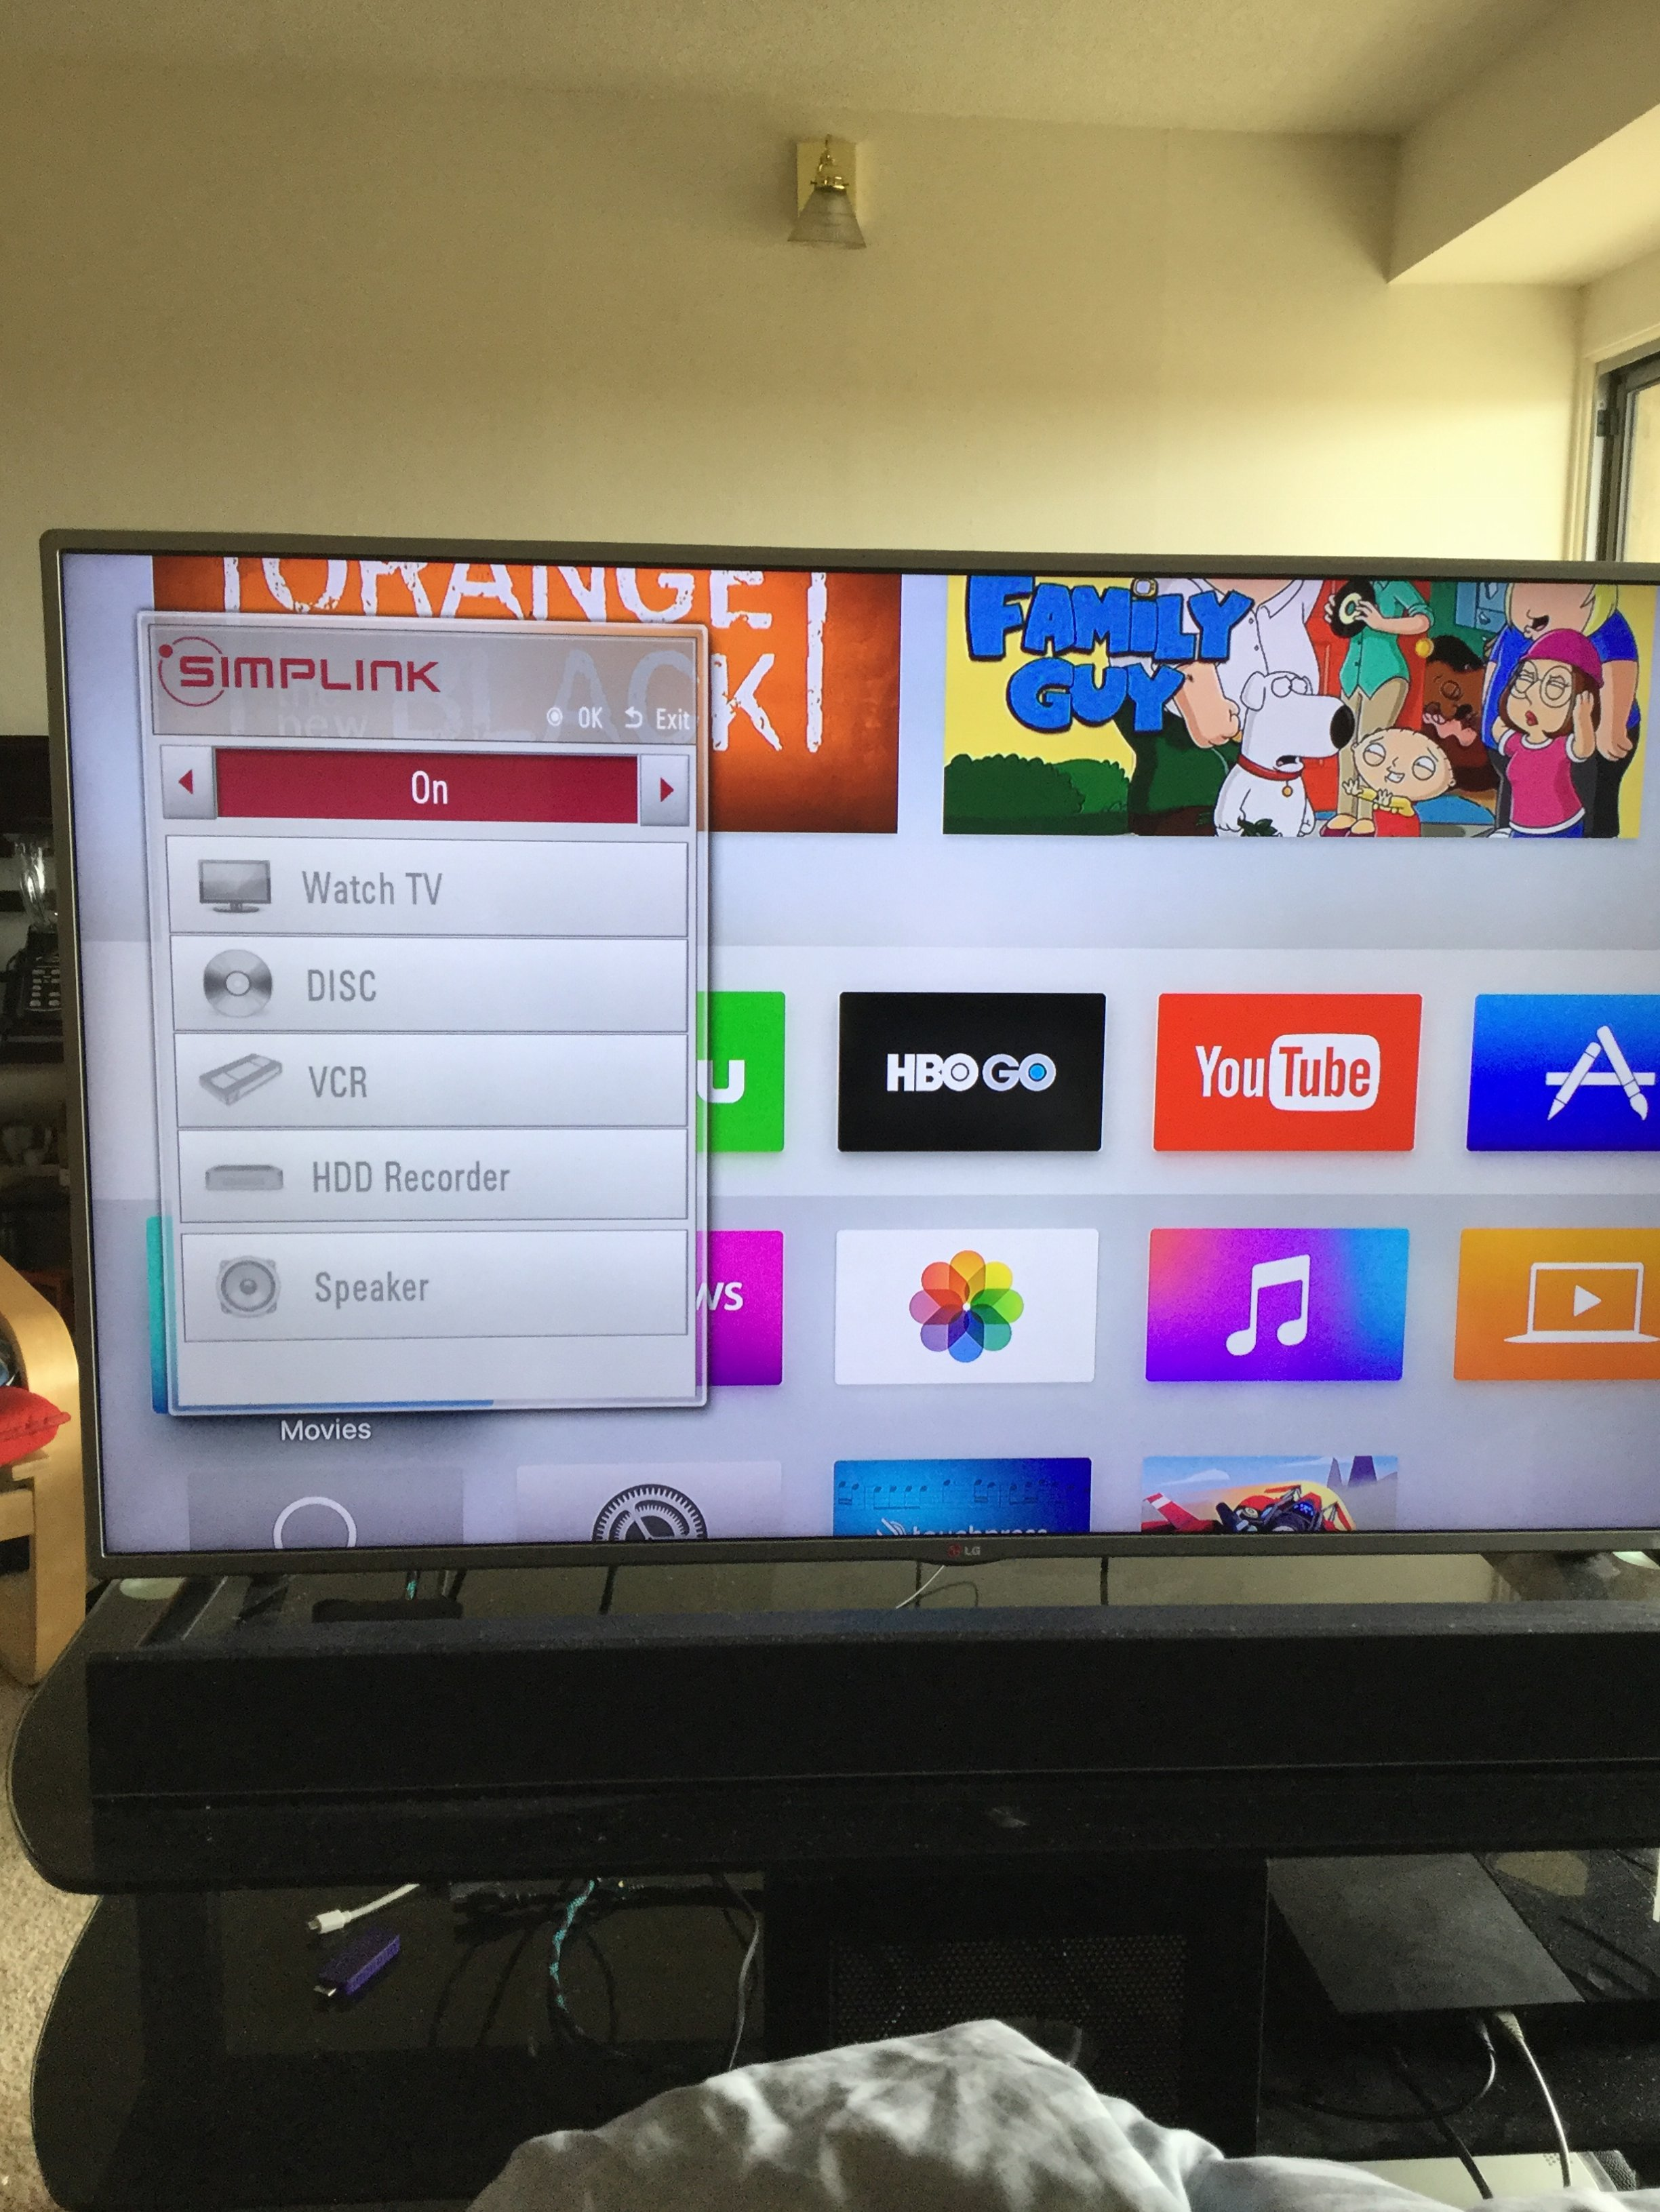 HDMI CEC Setup with LG Simplelink | Page 2 | MacRumors Forums